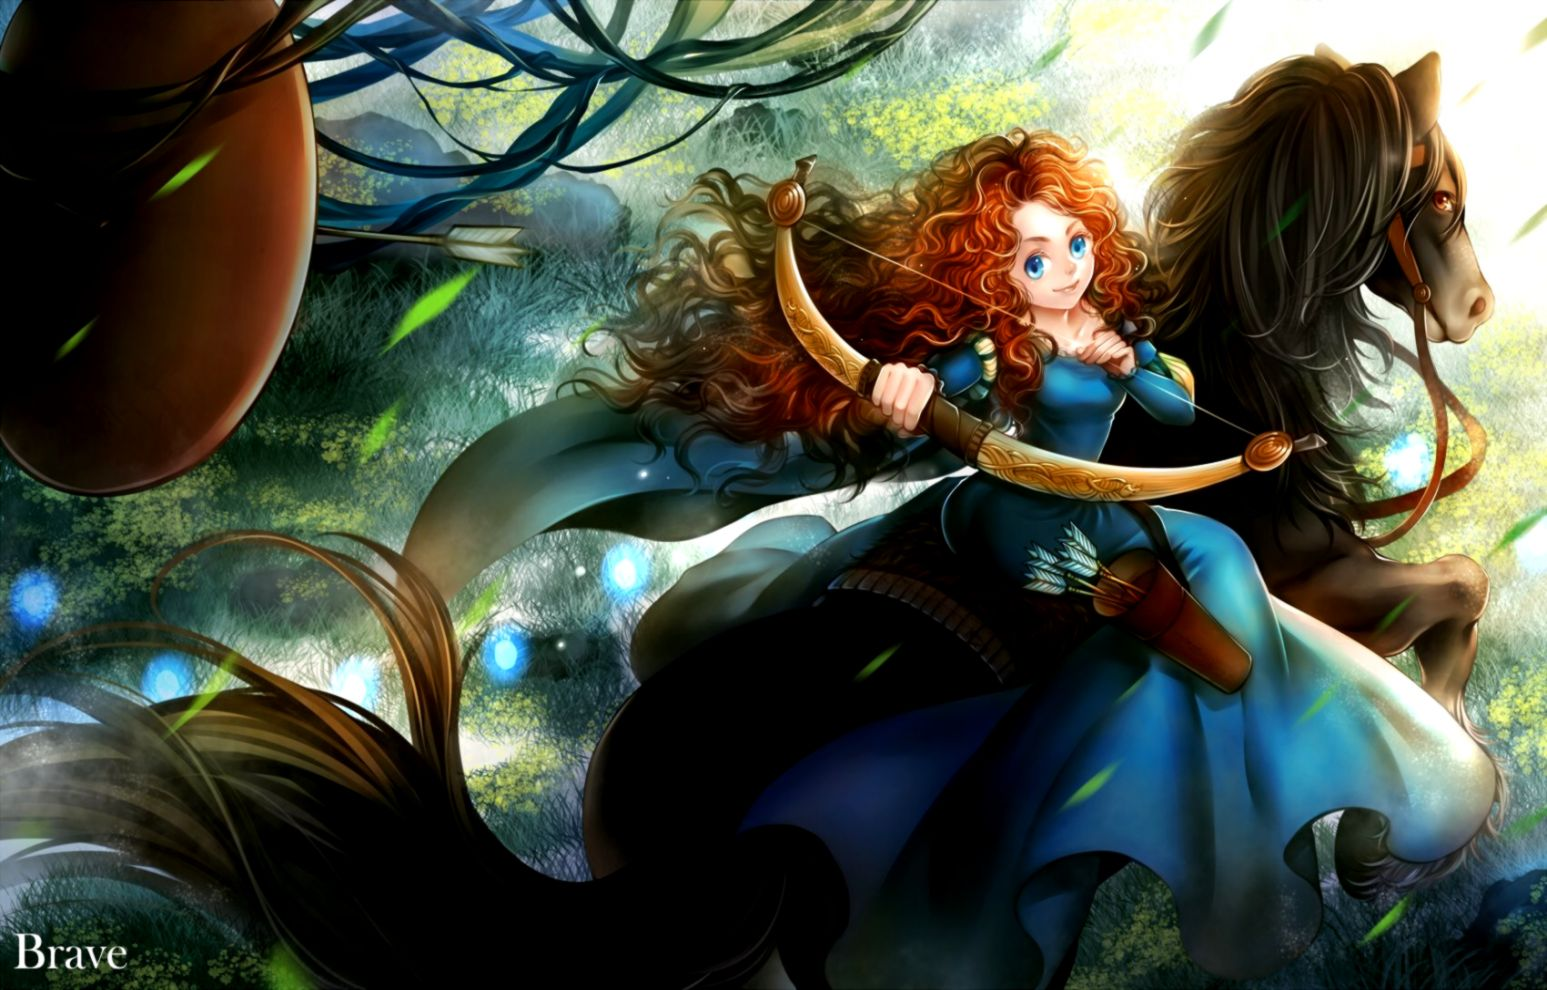 Princess Merida Wallpaper The Champion Wallpapers